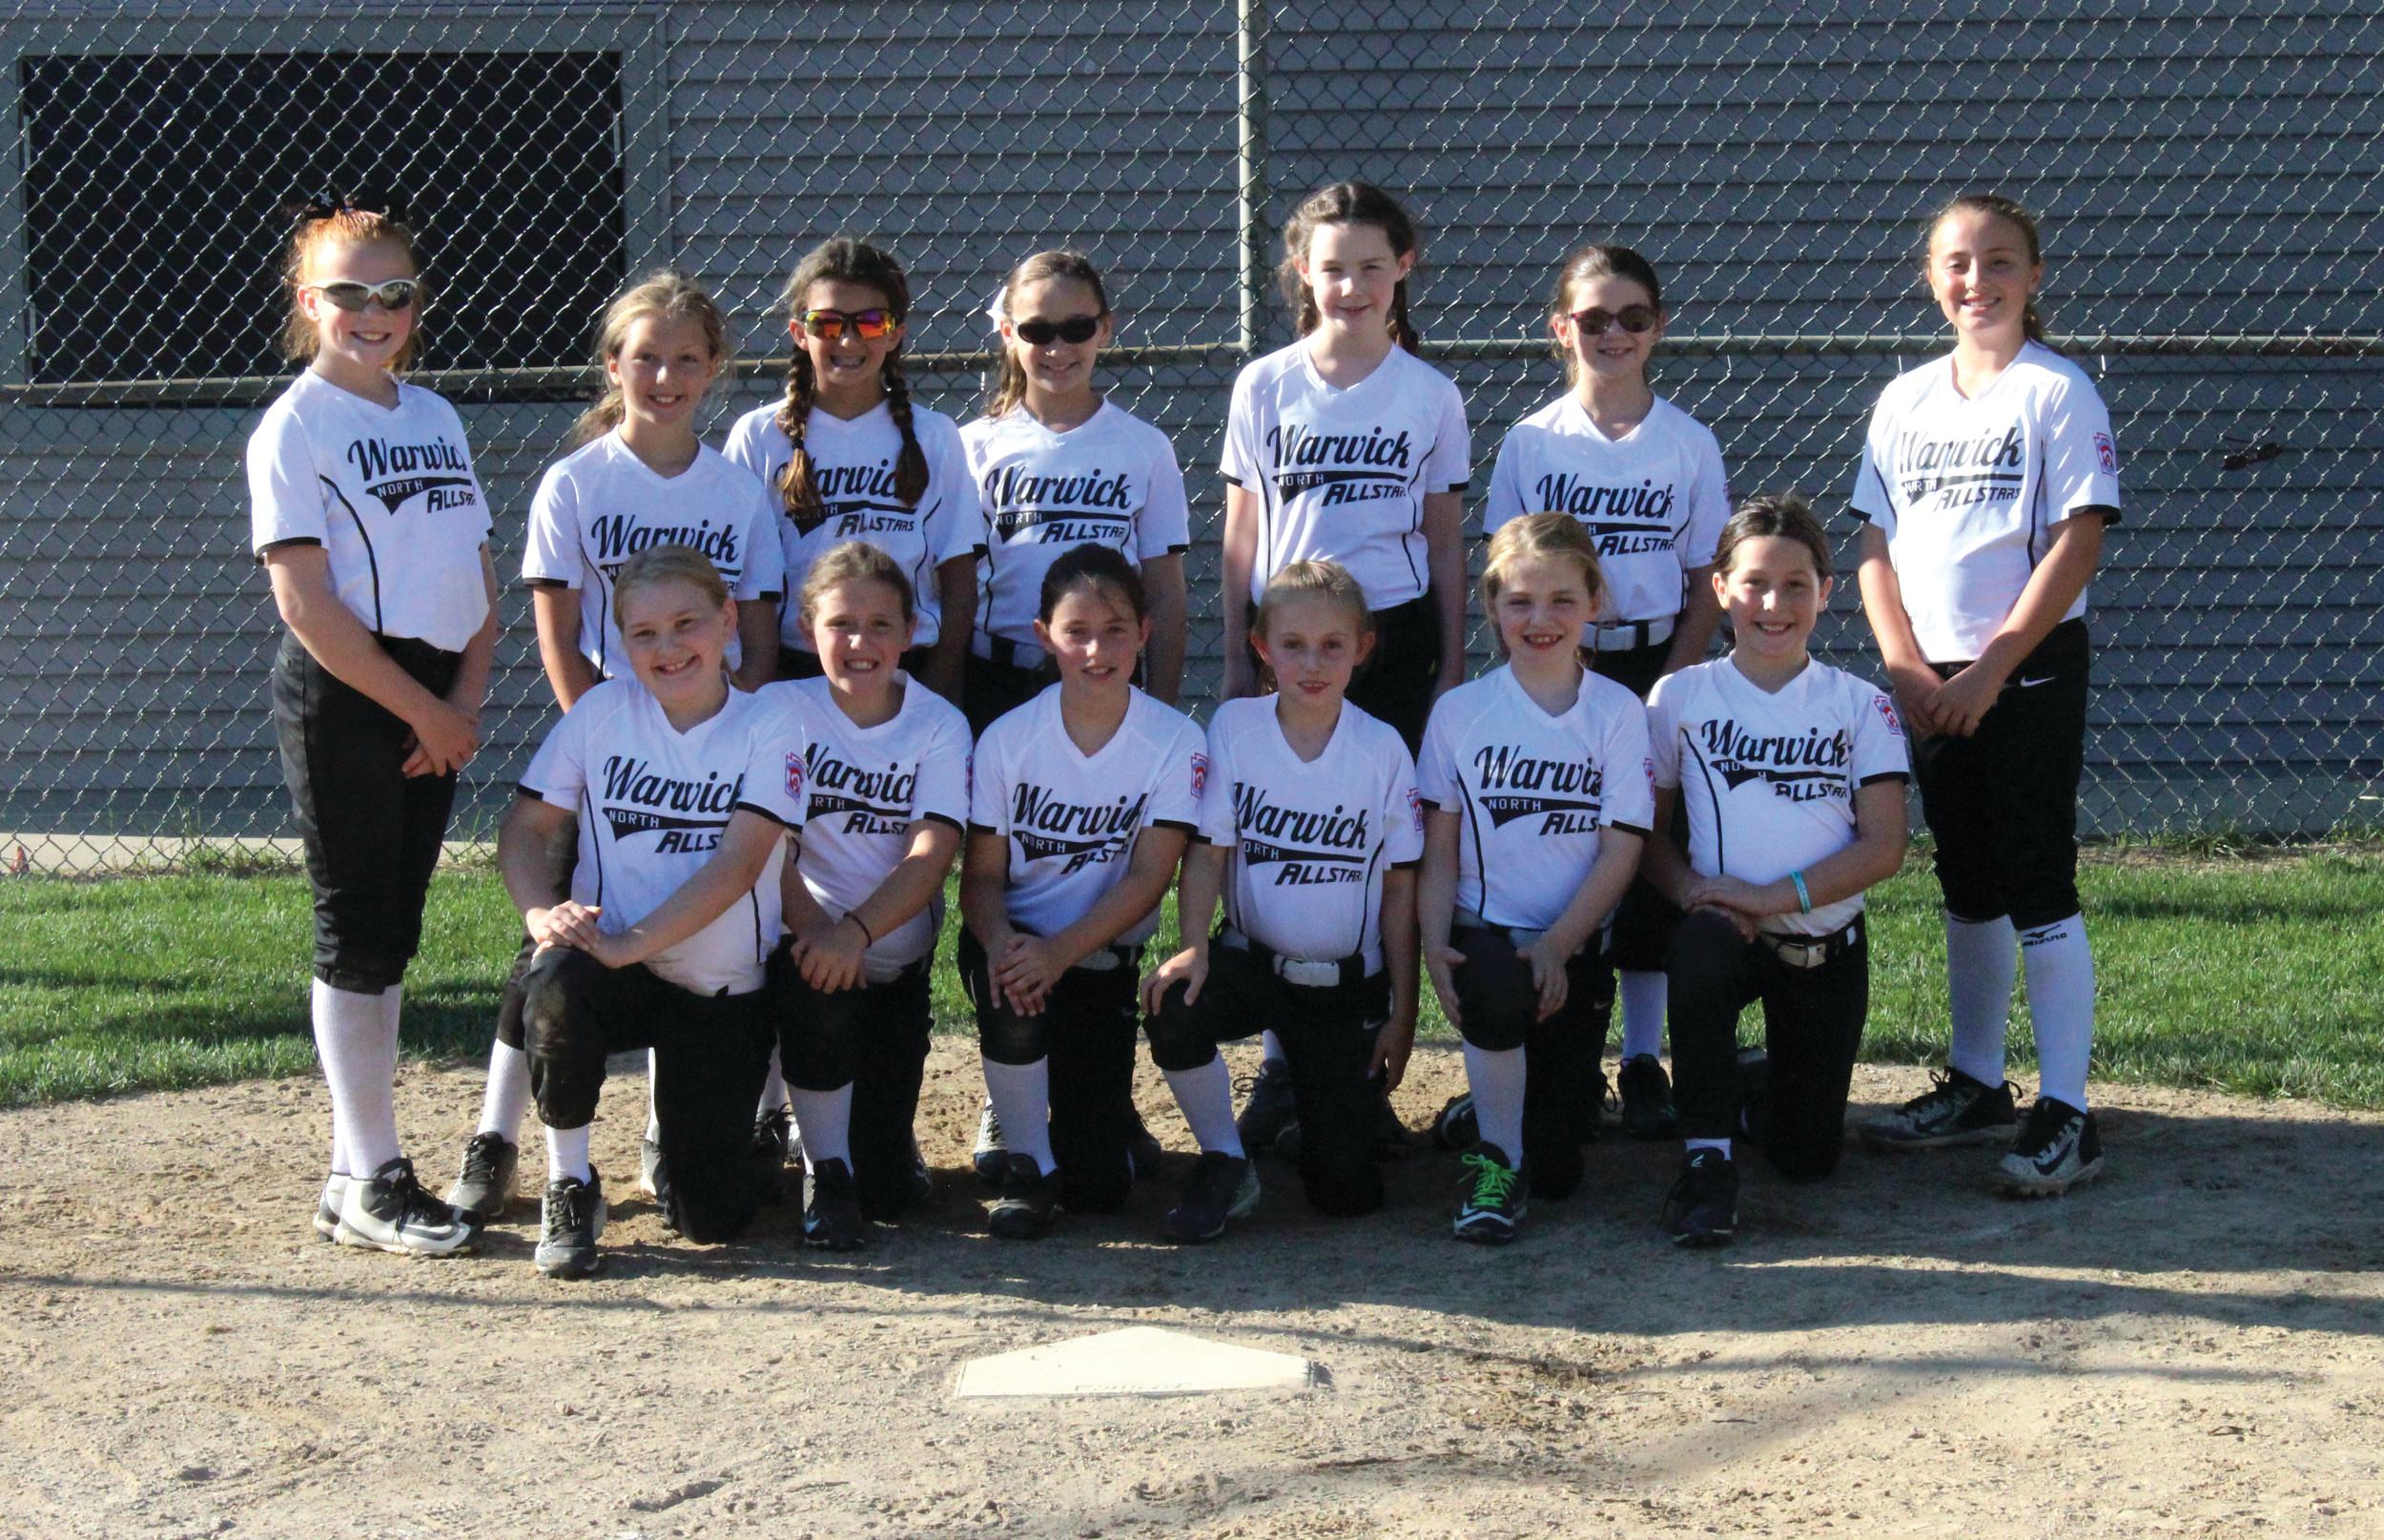 UNBEATEN: The Warwick North 8-10-year-old all-star team is currently in Pittston, Pennsylvania, competing for an Eastern Regional championship. Above, Warwick North poses for a team photo last Wednesday at Bend Street Complex. The team includes: Caitlin Trainor, Gretchen Dombeck, Avry Dewar, Reagan Motta, Emma Lemoine, Genna D'Amato, Holly Cameron, Mia Boyajian, Emma Burr, Hannah Fitzpatrick, Jaedyn Miga, Alivia Cota and Adrianna Pettinato.